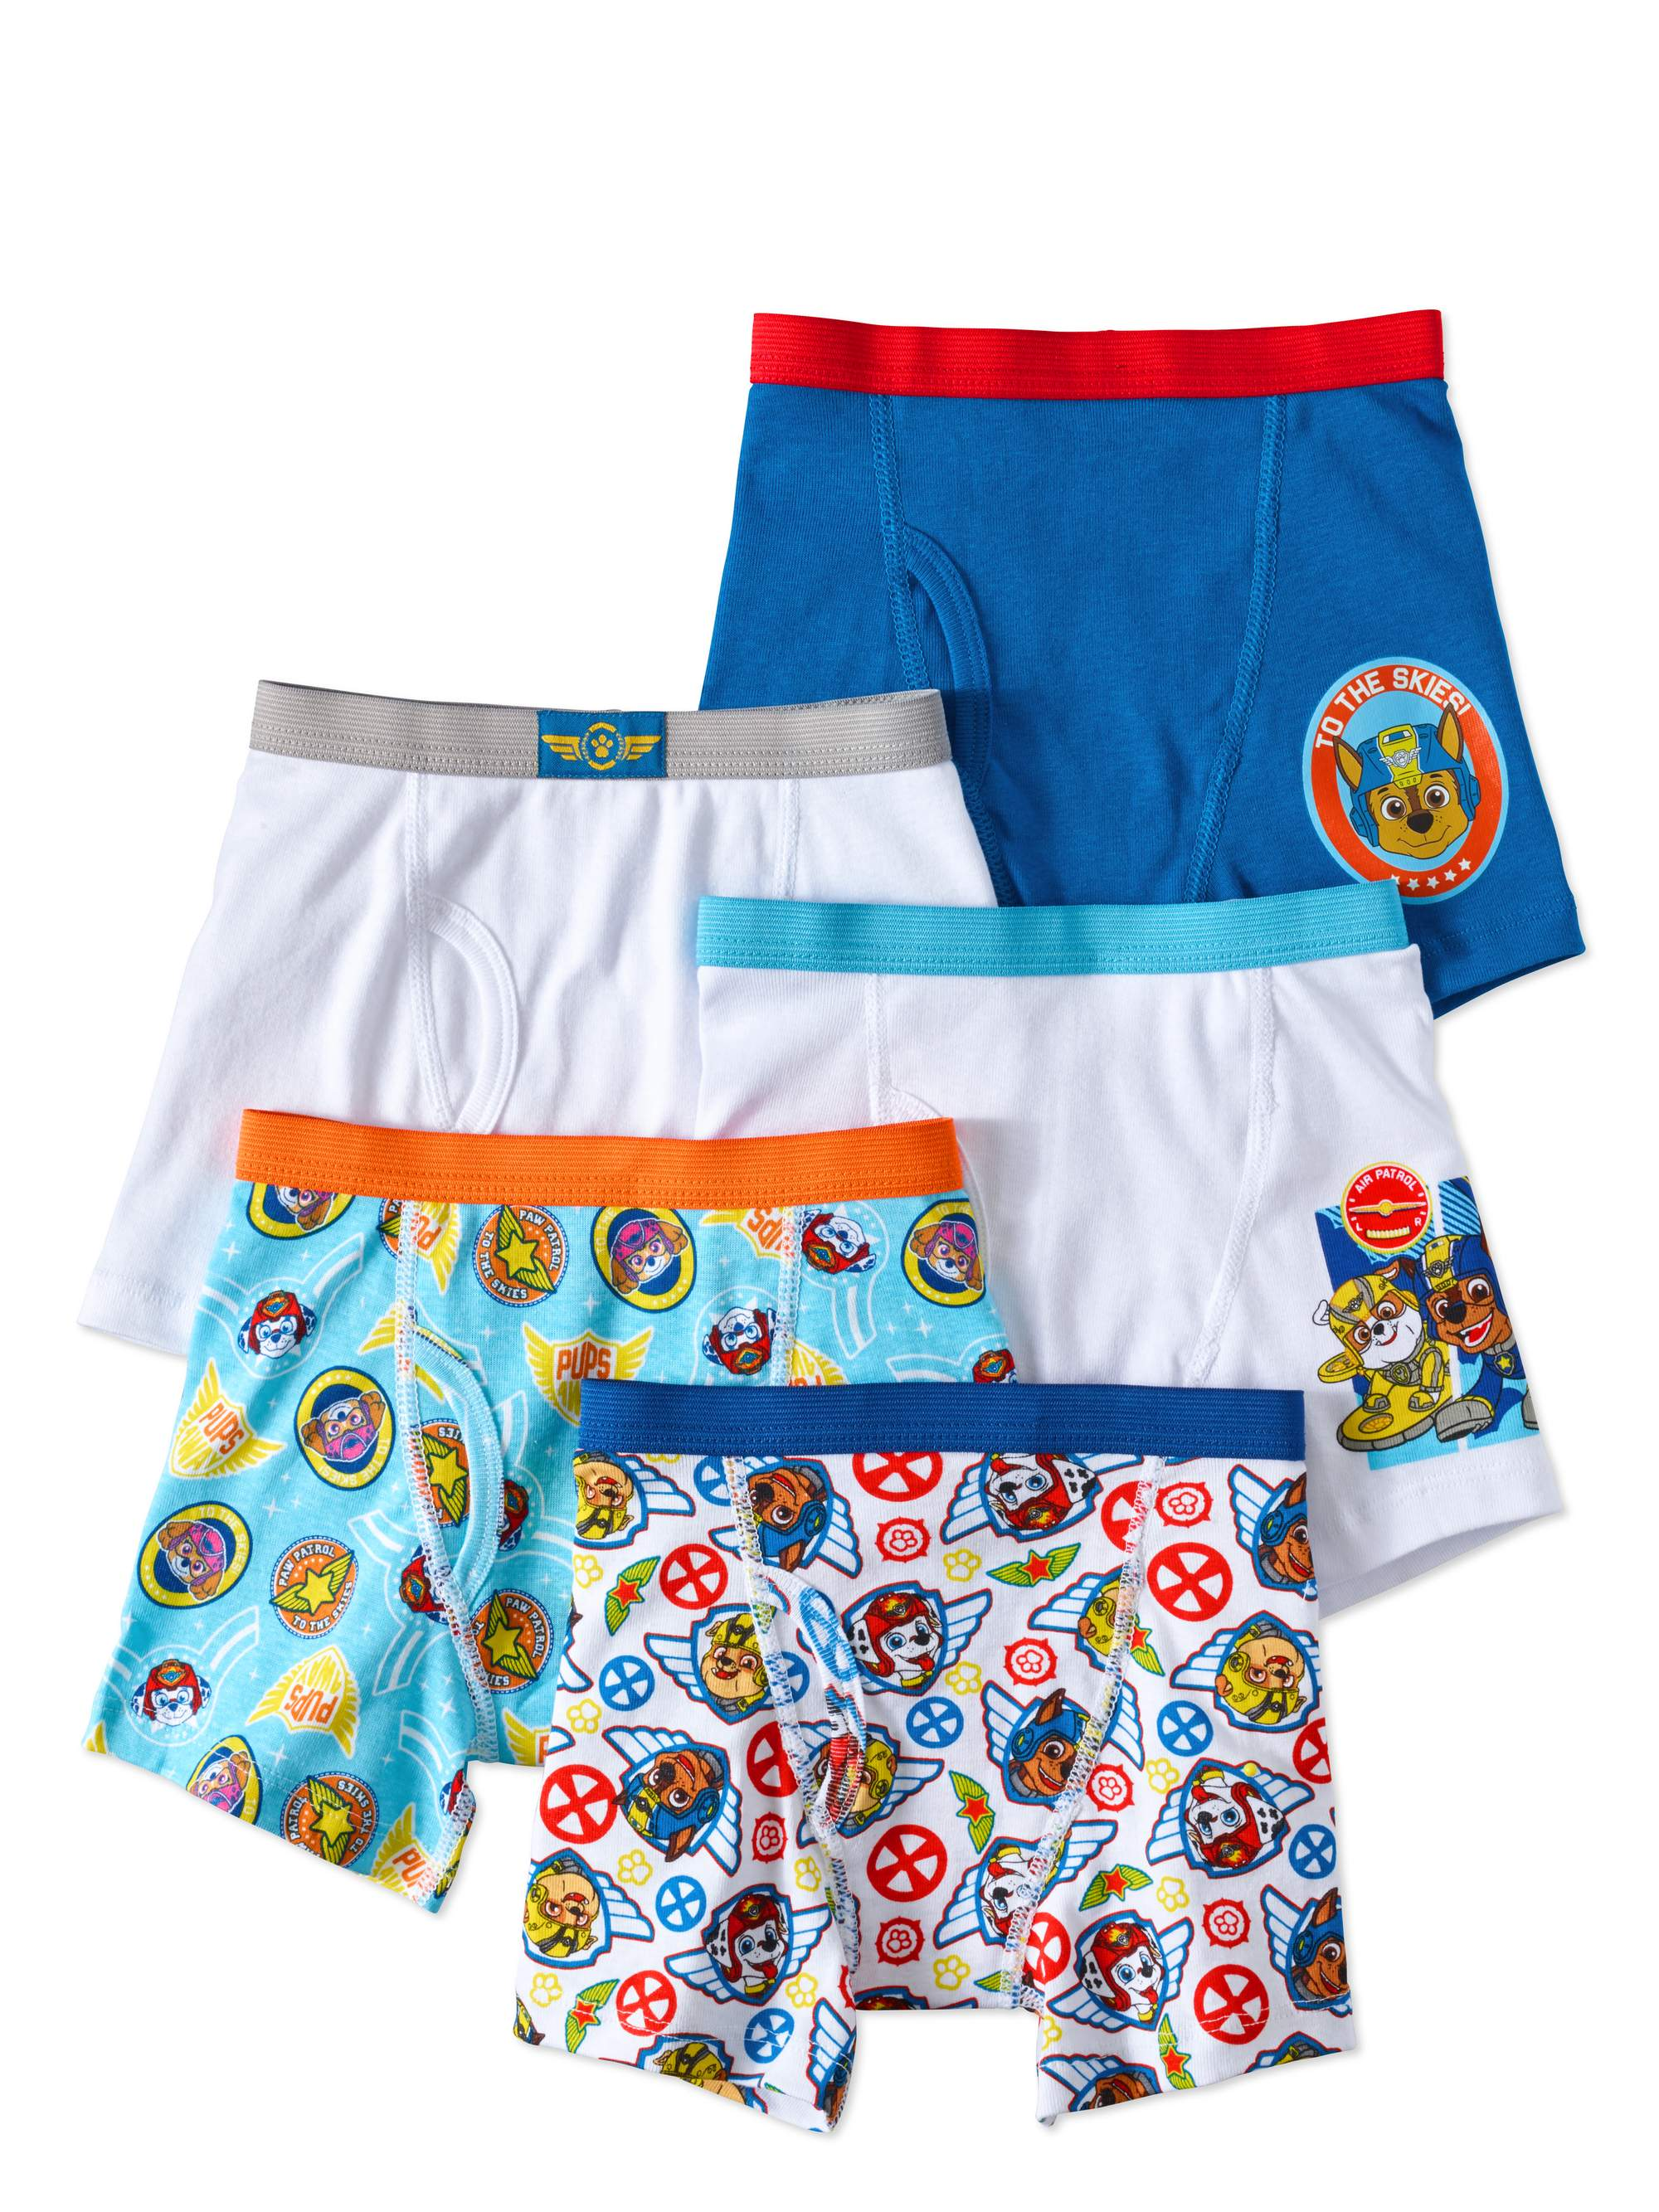 Starter Boys Boxer Briefs 4-Pack Exclusive